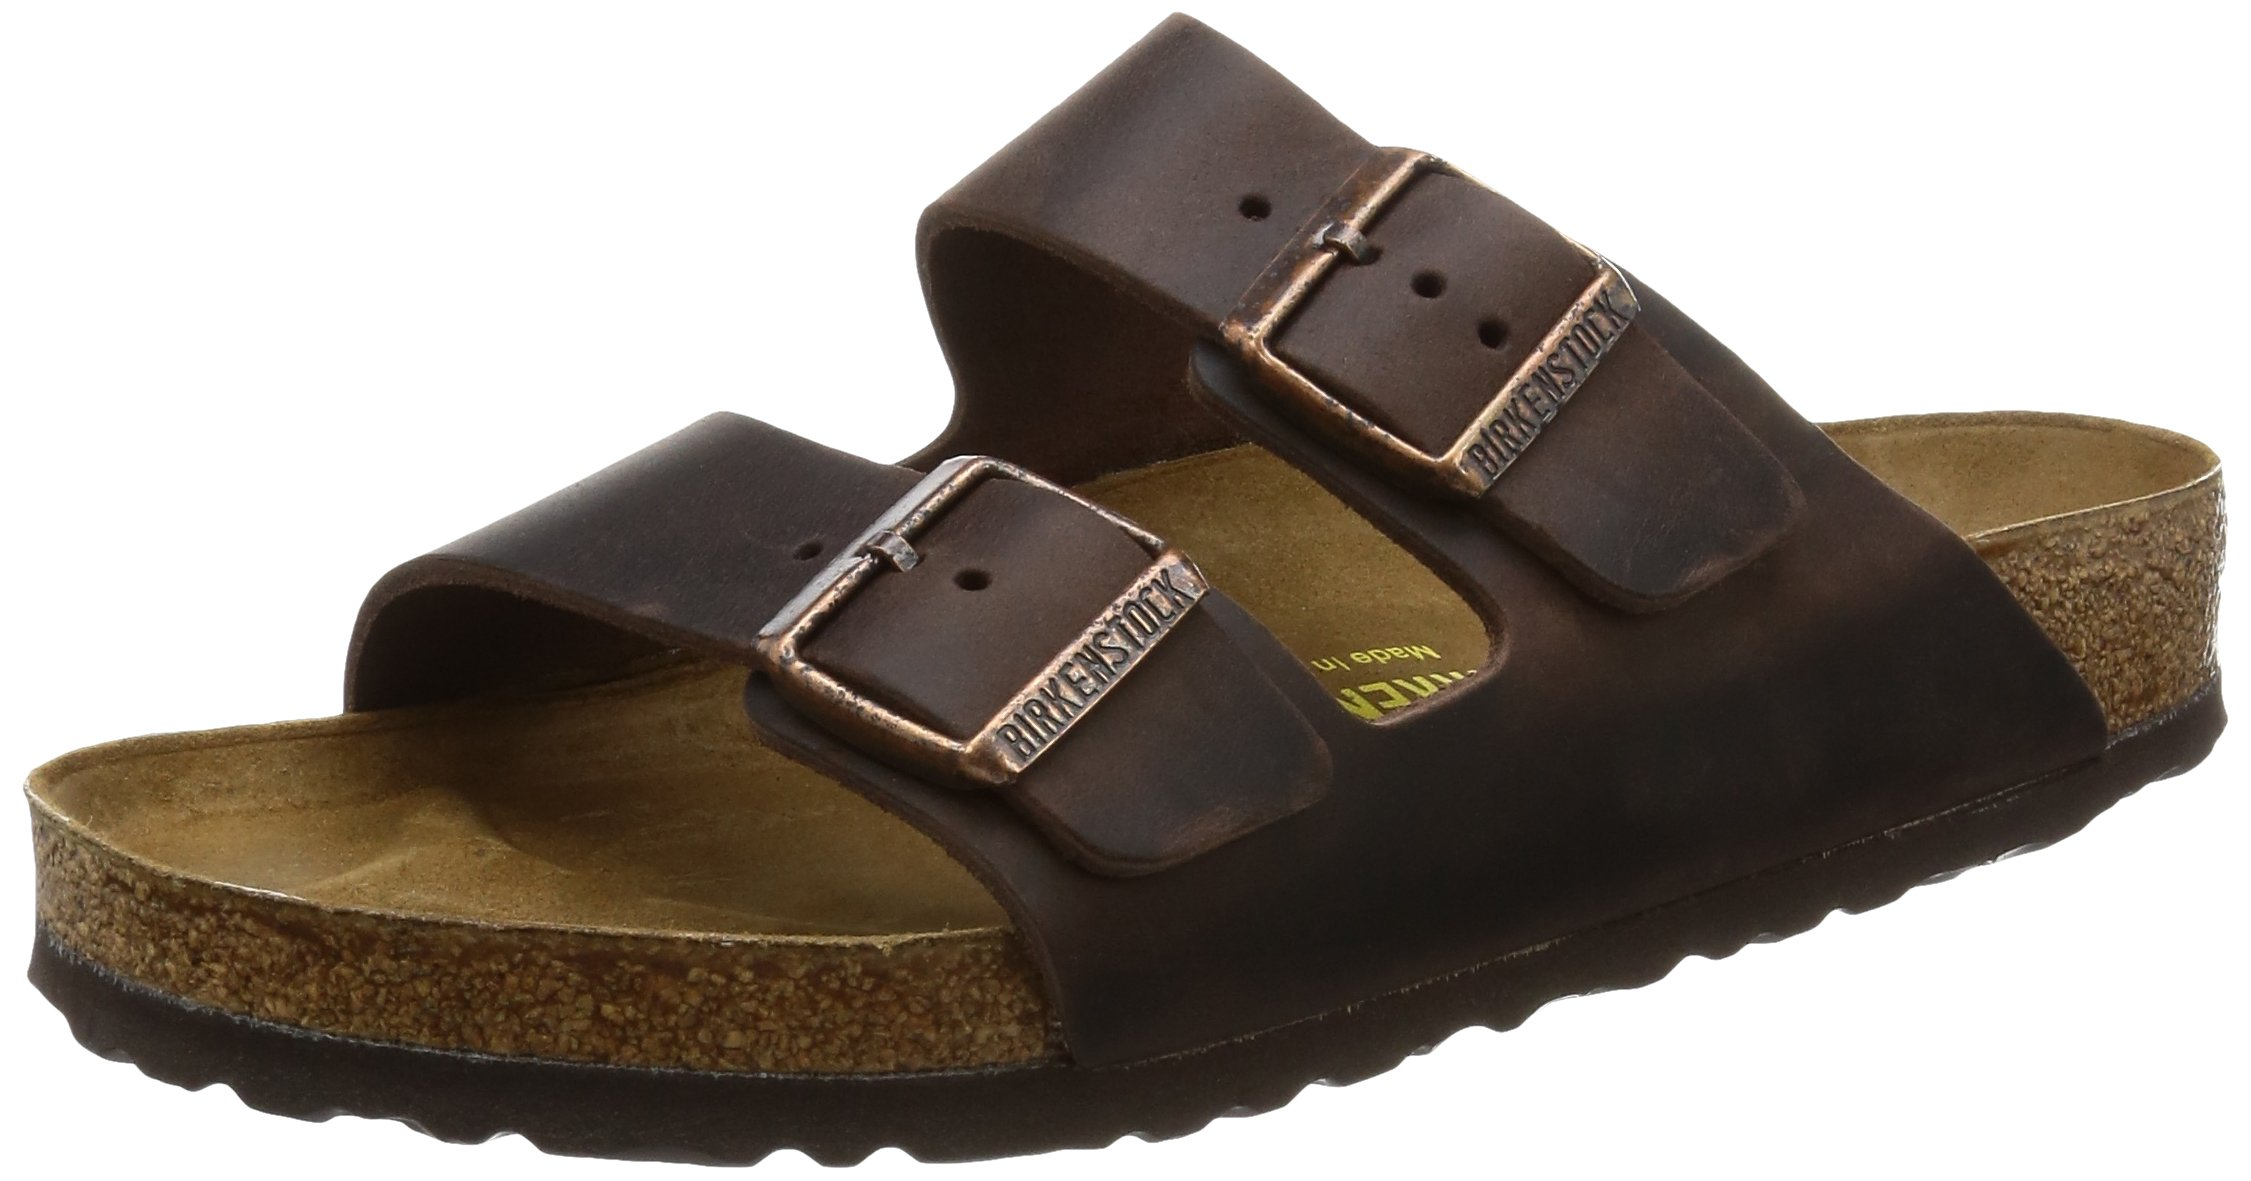 Birkenstock Unisex Arizona Sandal,Habana Oiled Leather,44 M EU